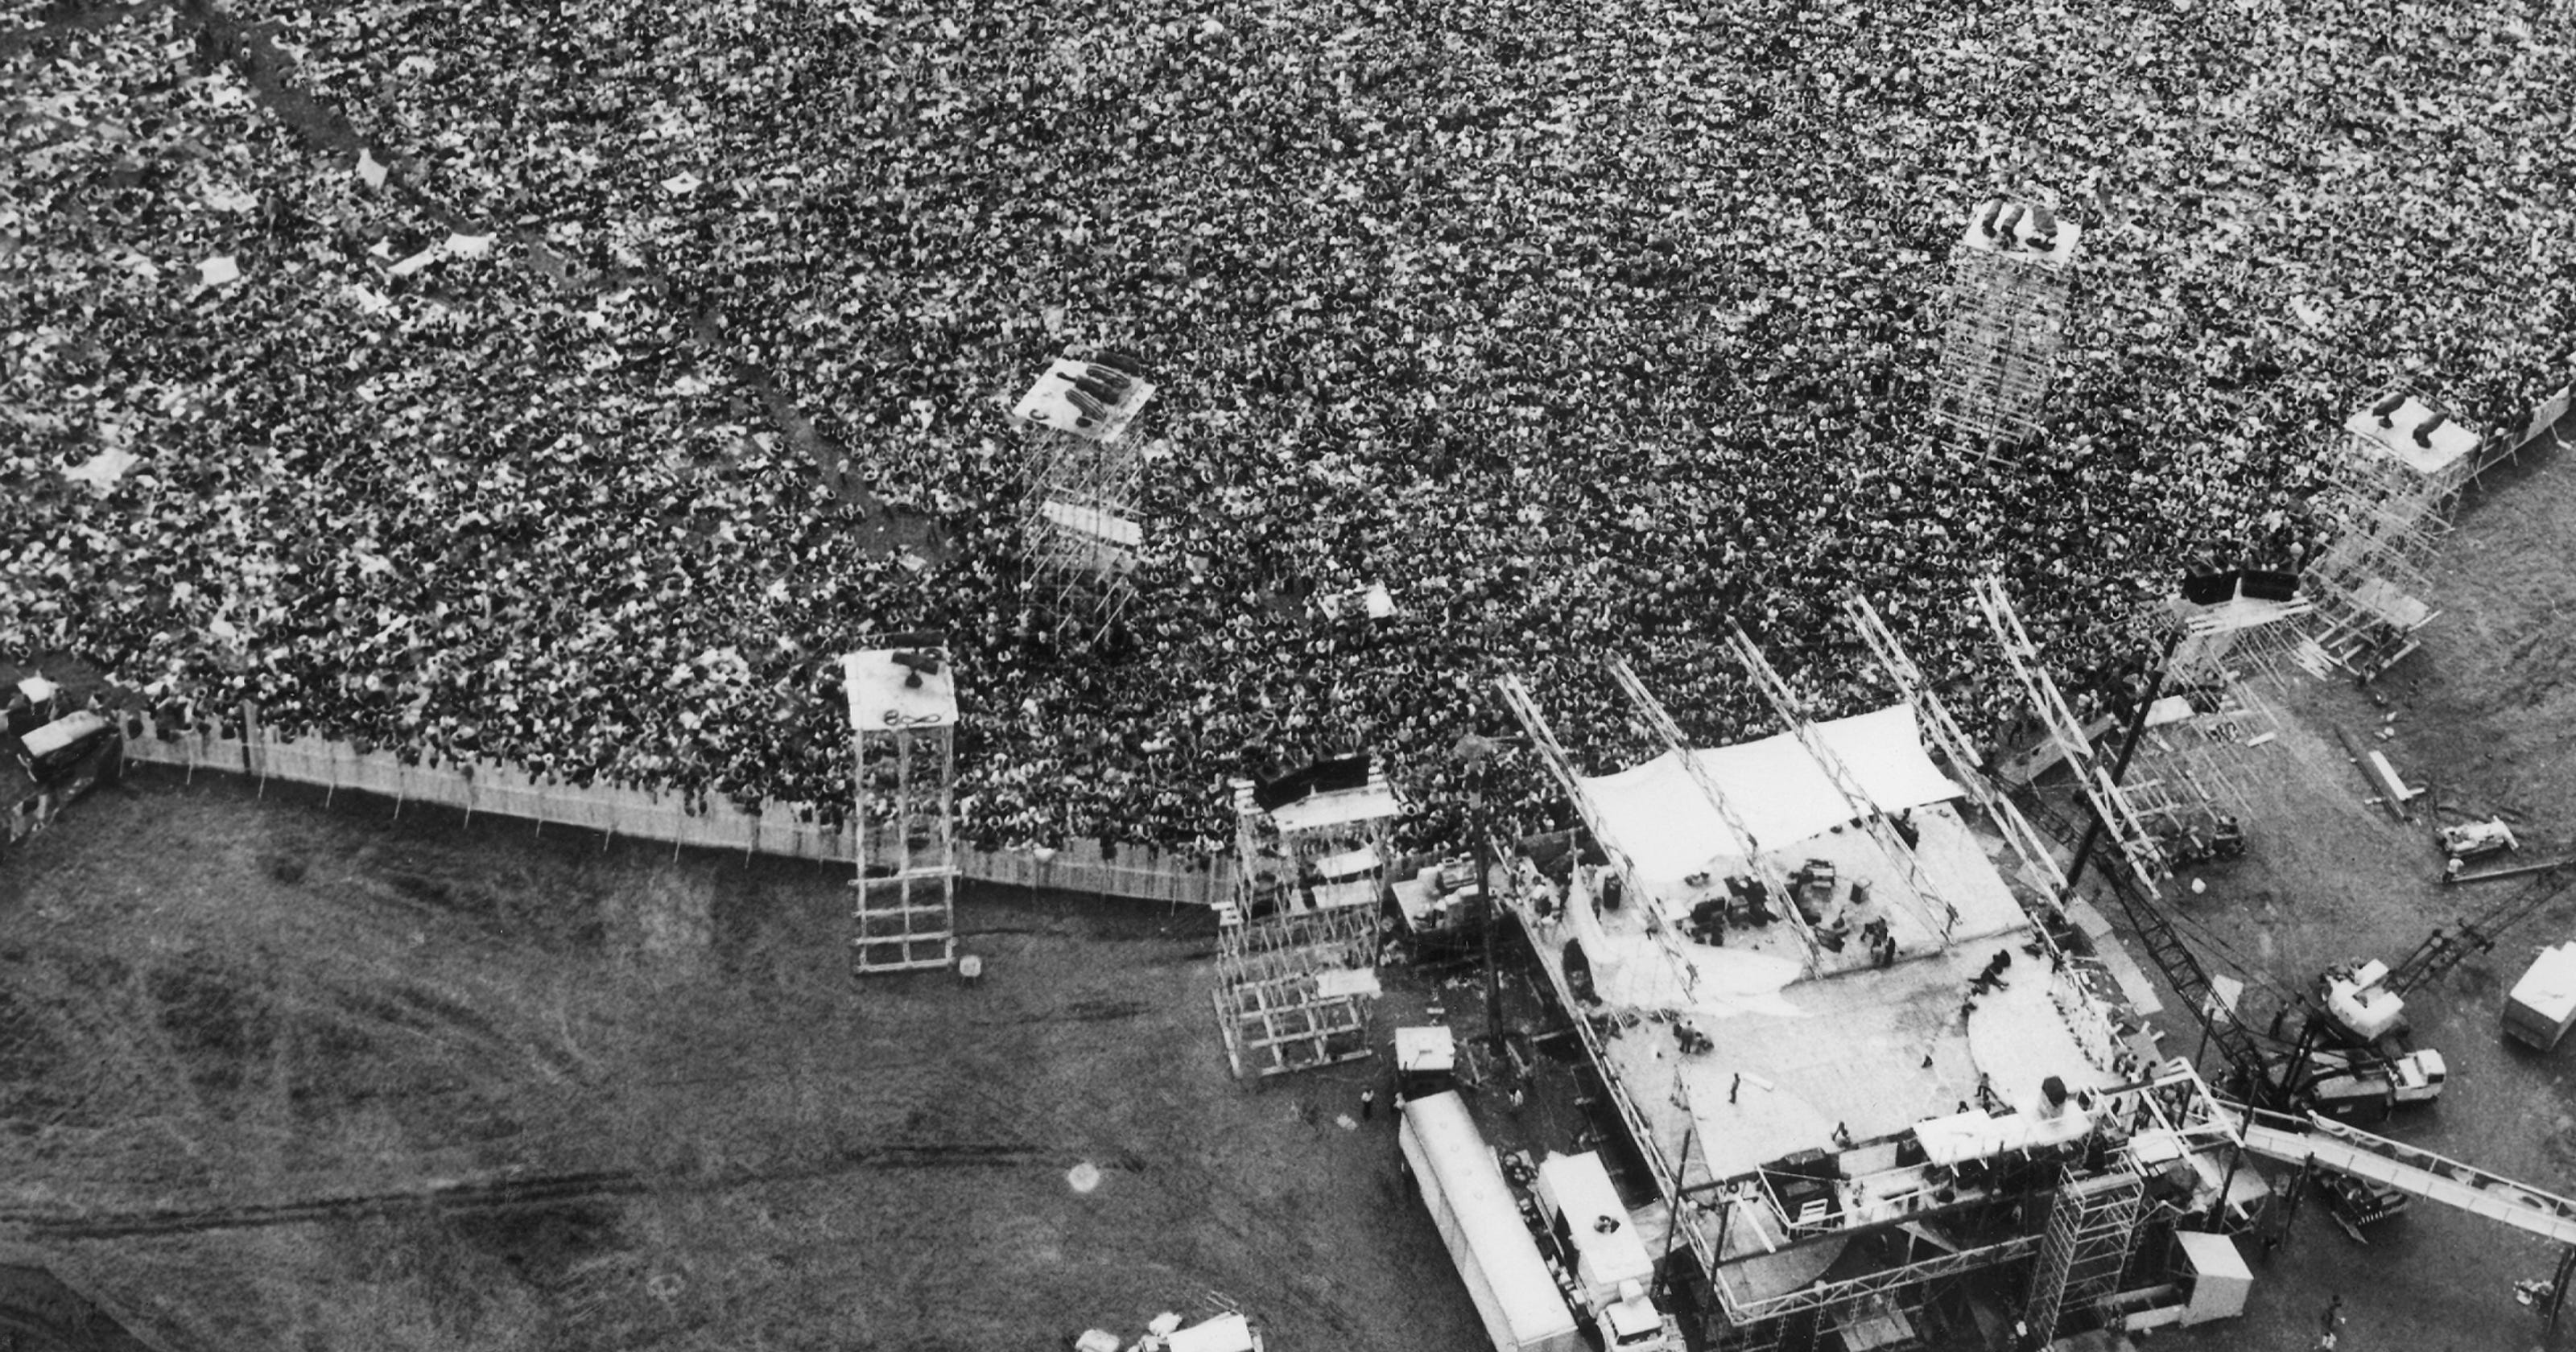 Woodstock at 50: Why division, economics overshadowed music, unity